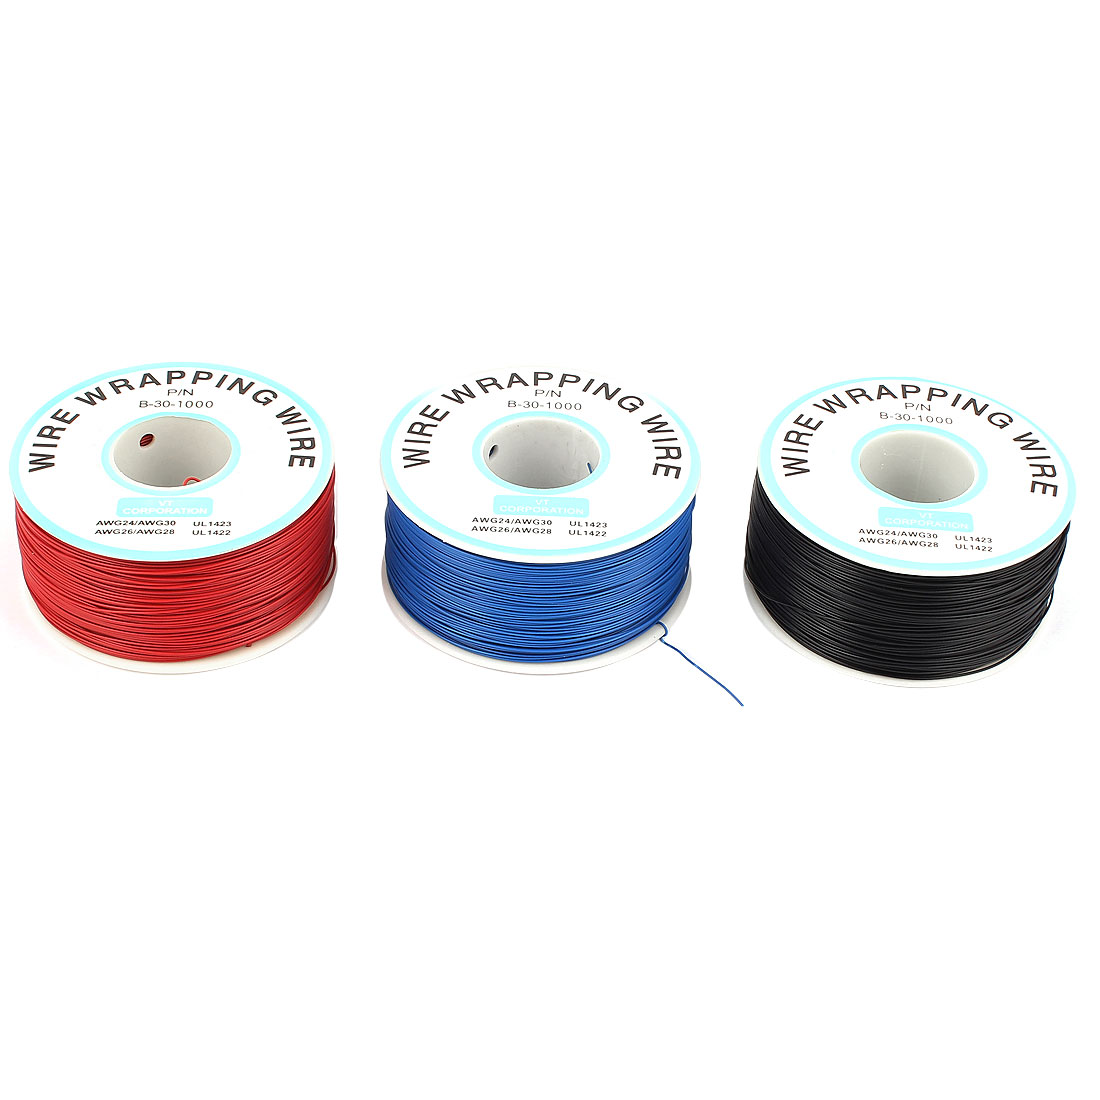 3PCS PCB Solder Assorted Color Soft 0.25mm Dia Copper Wire 30AWG Wrapping Wrap 1000Ft